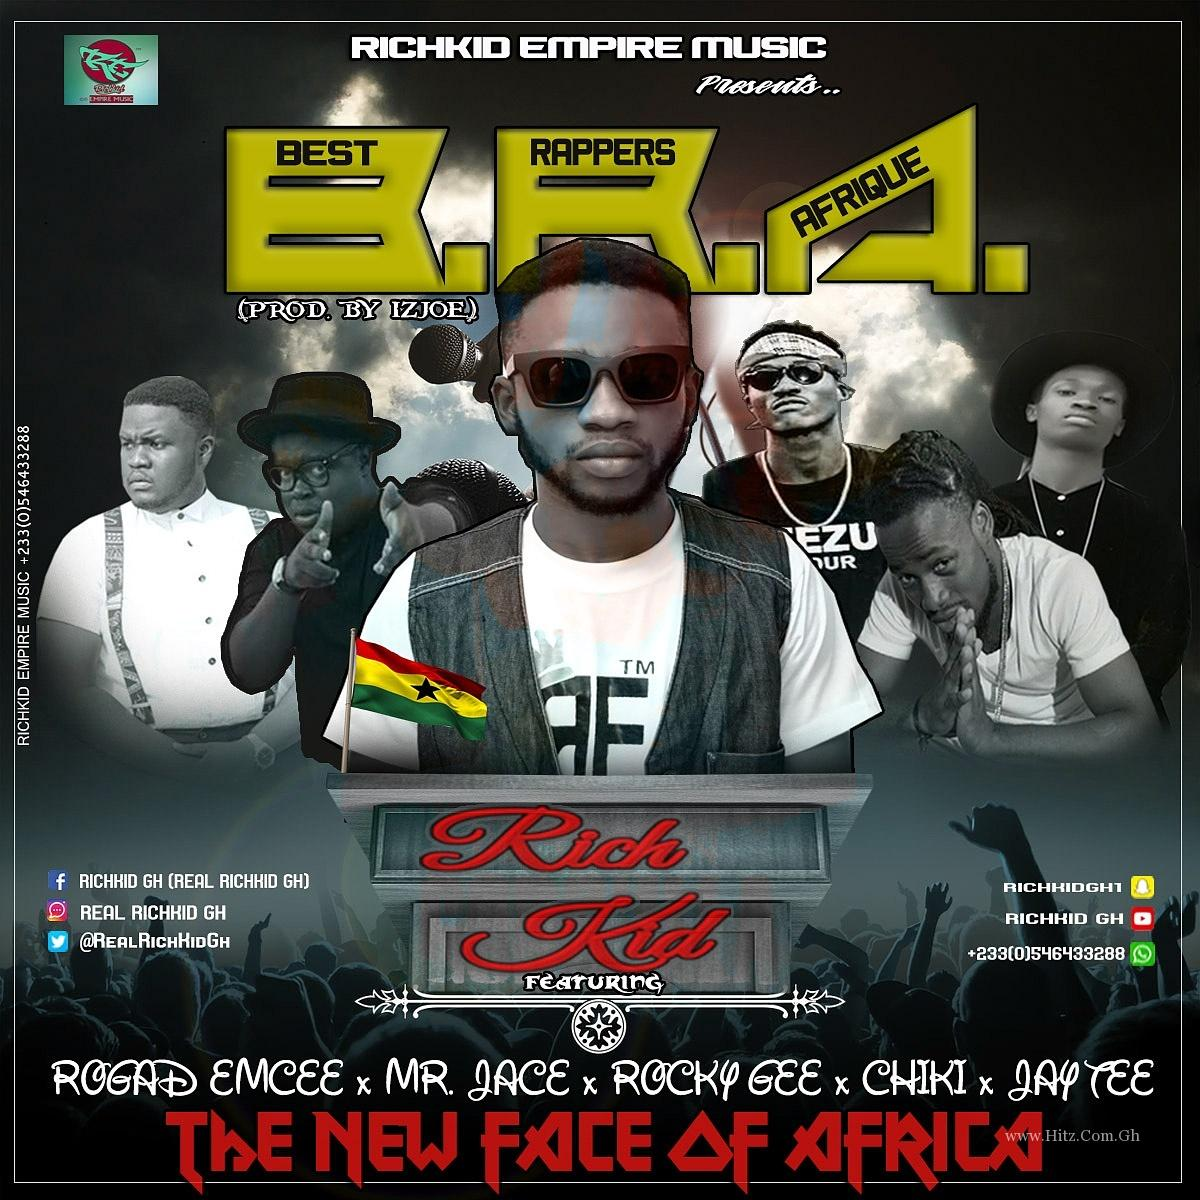 Richkid Gh - B.R.A(Best Rappers Afrique) ft. Rogad Mcee x Mr Jace x Jay Tee x Chiki x Rocky Gee(Prod by IzJoe)